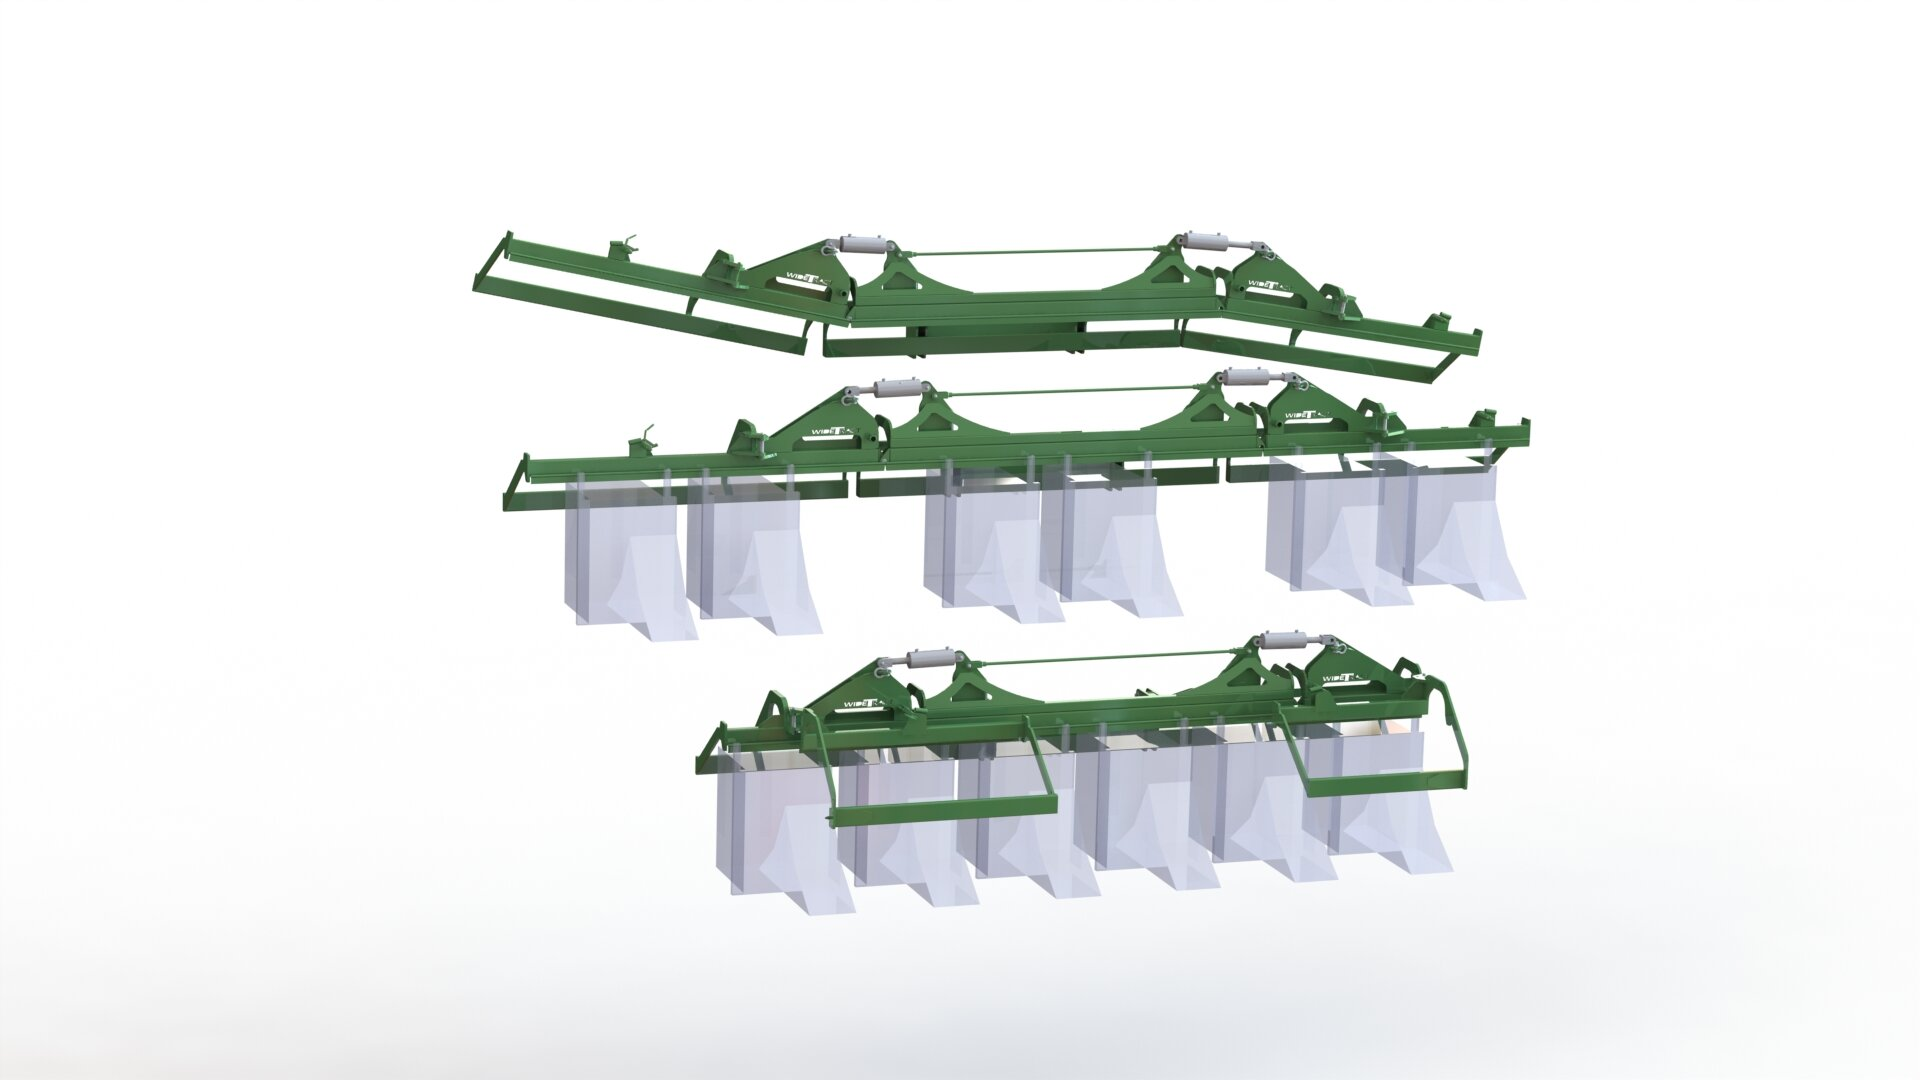 effective ground-following and folding for legal transport